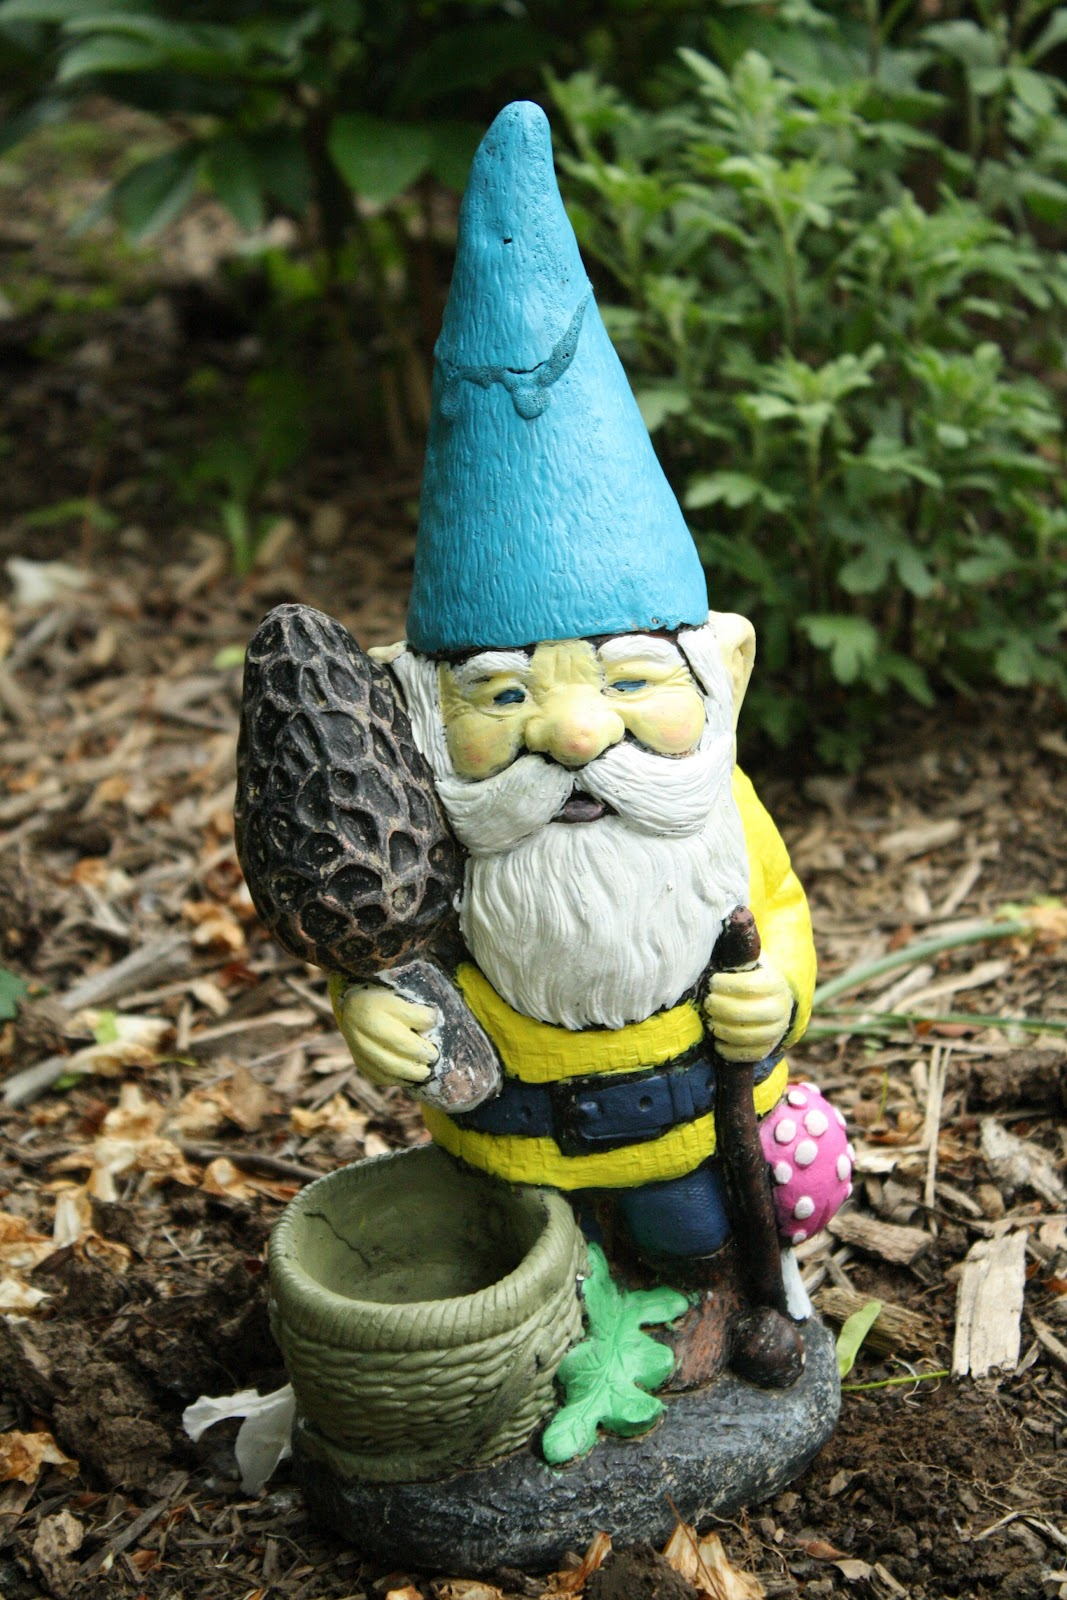 Gnome In Garden: Lawn Gnome Bikini: Garden Gnome In Car